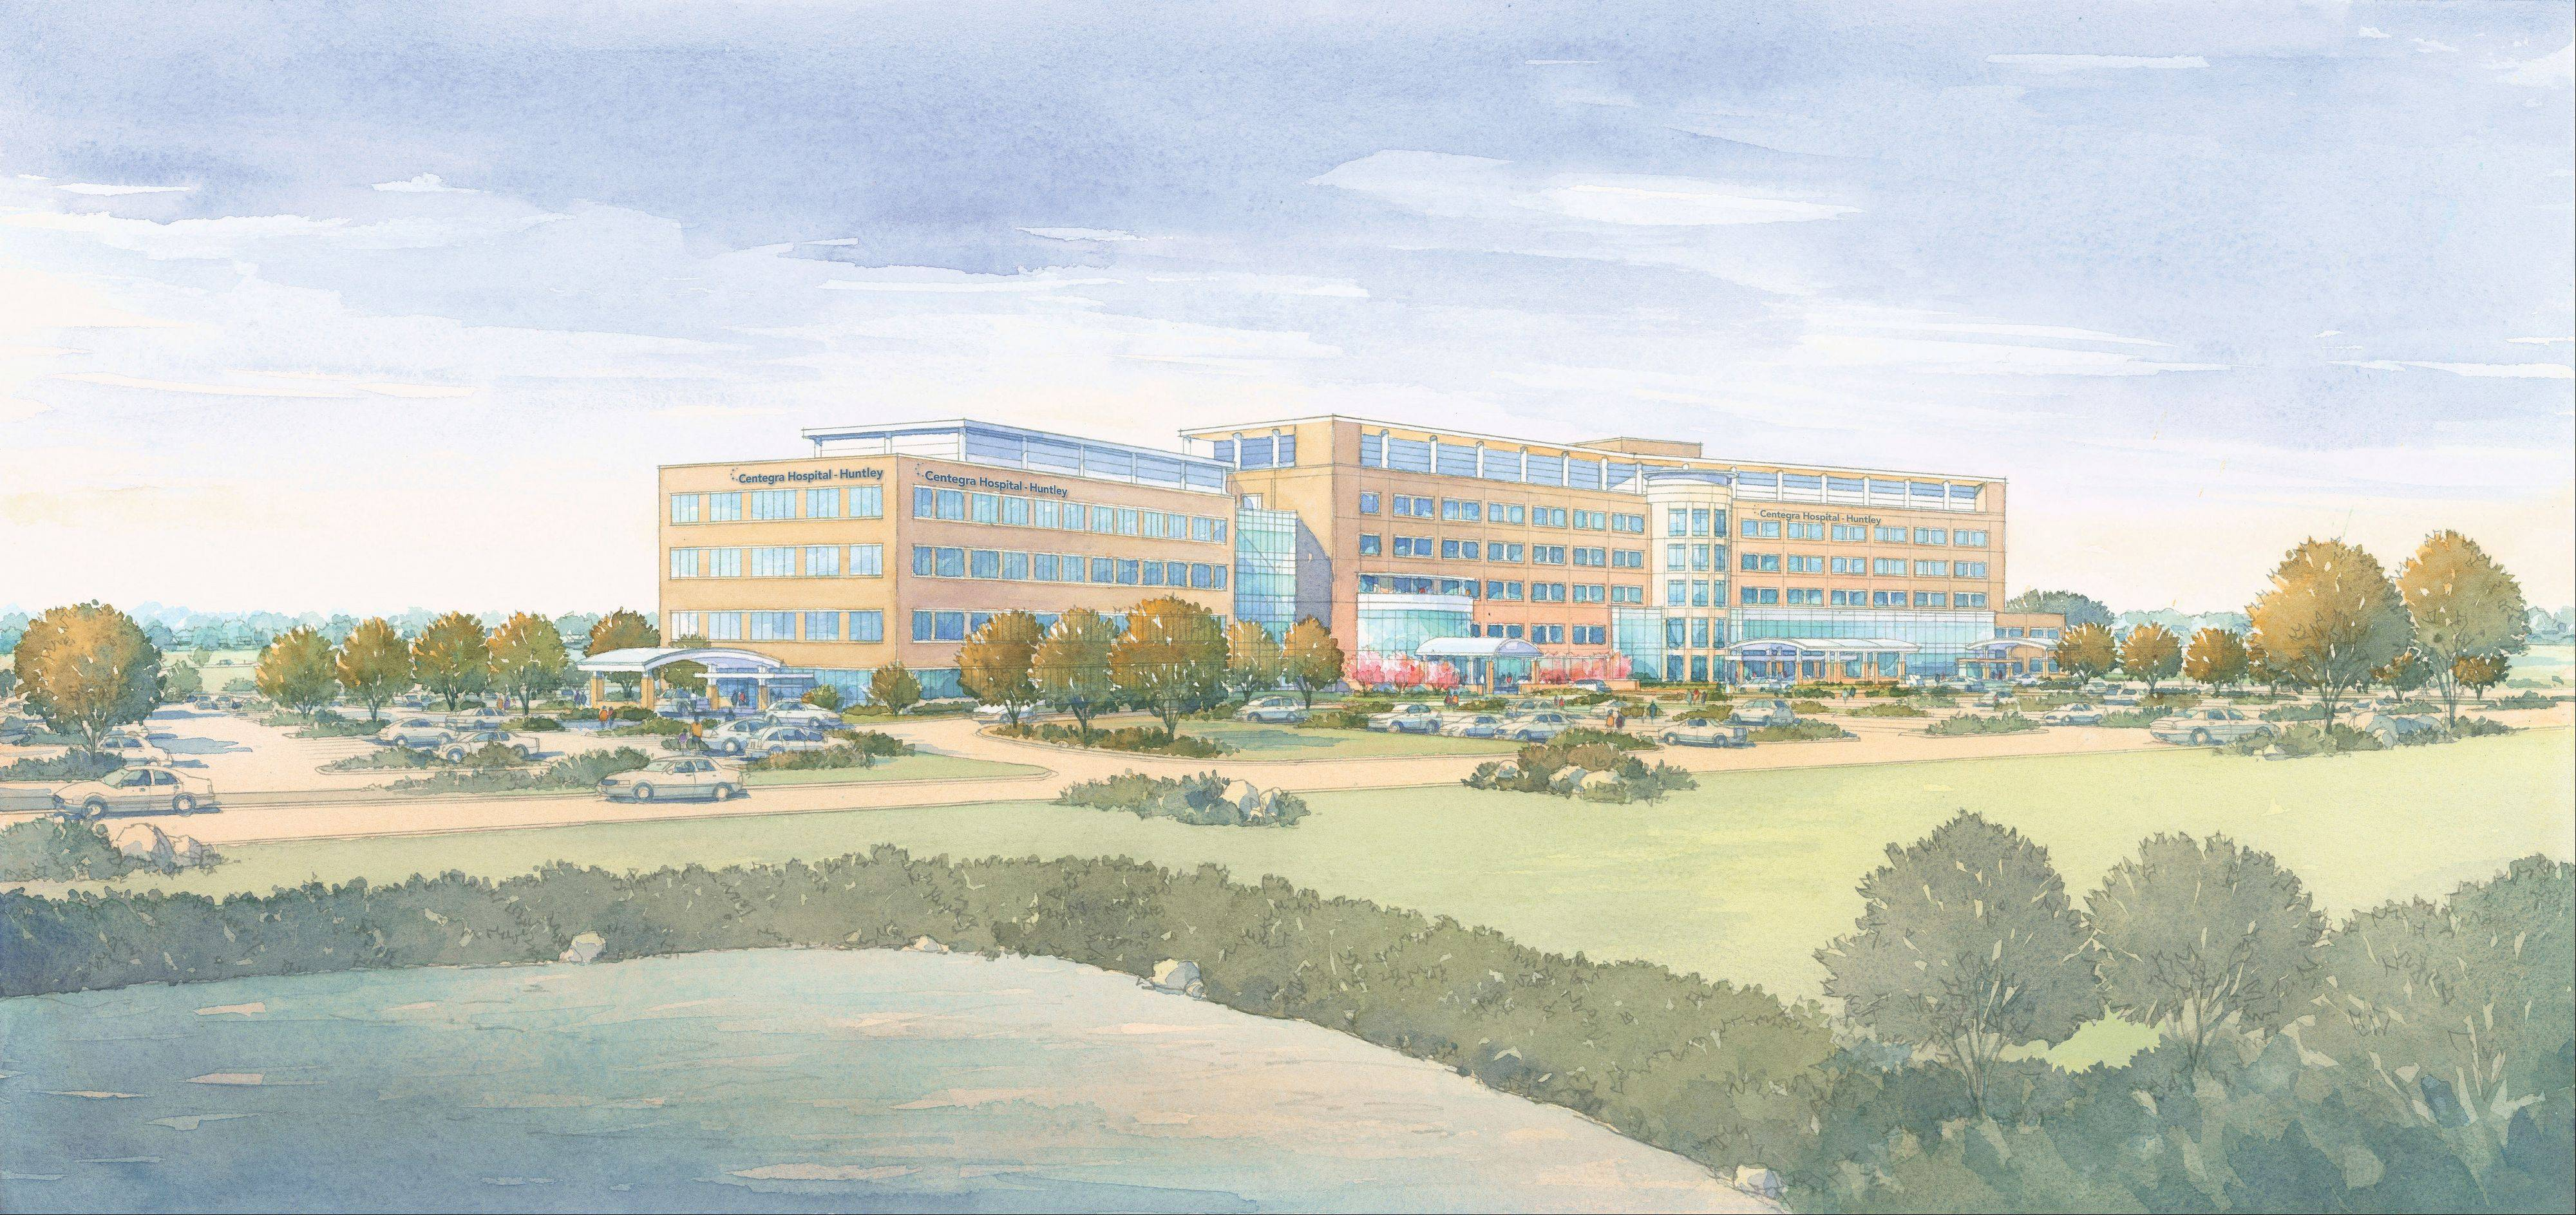 A rendering of the 128-bed hospital Centegra Health System intends to build in Huntley. Centegra officials have one more hurdle to clear before ground is broken in the fall.